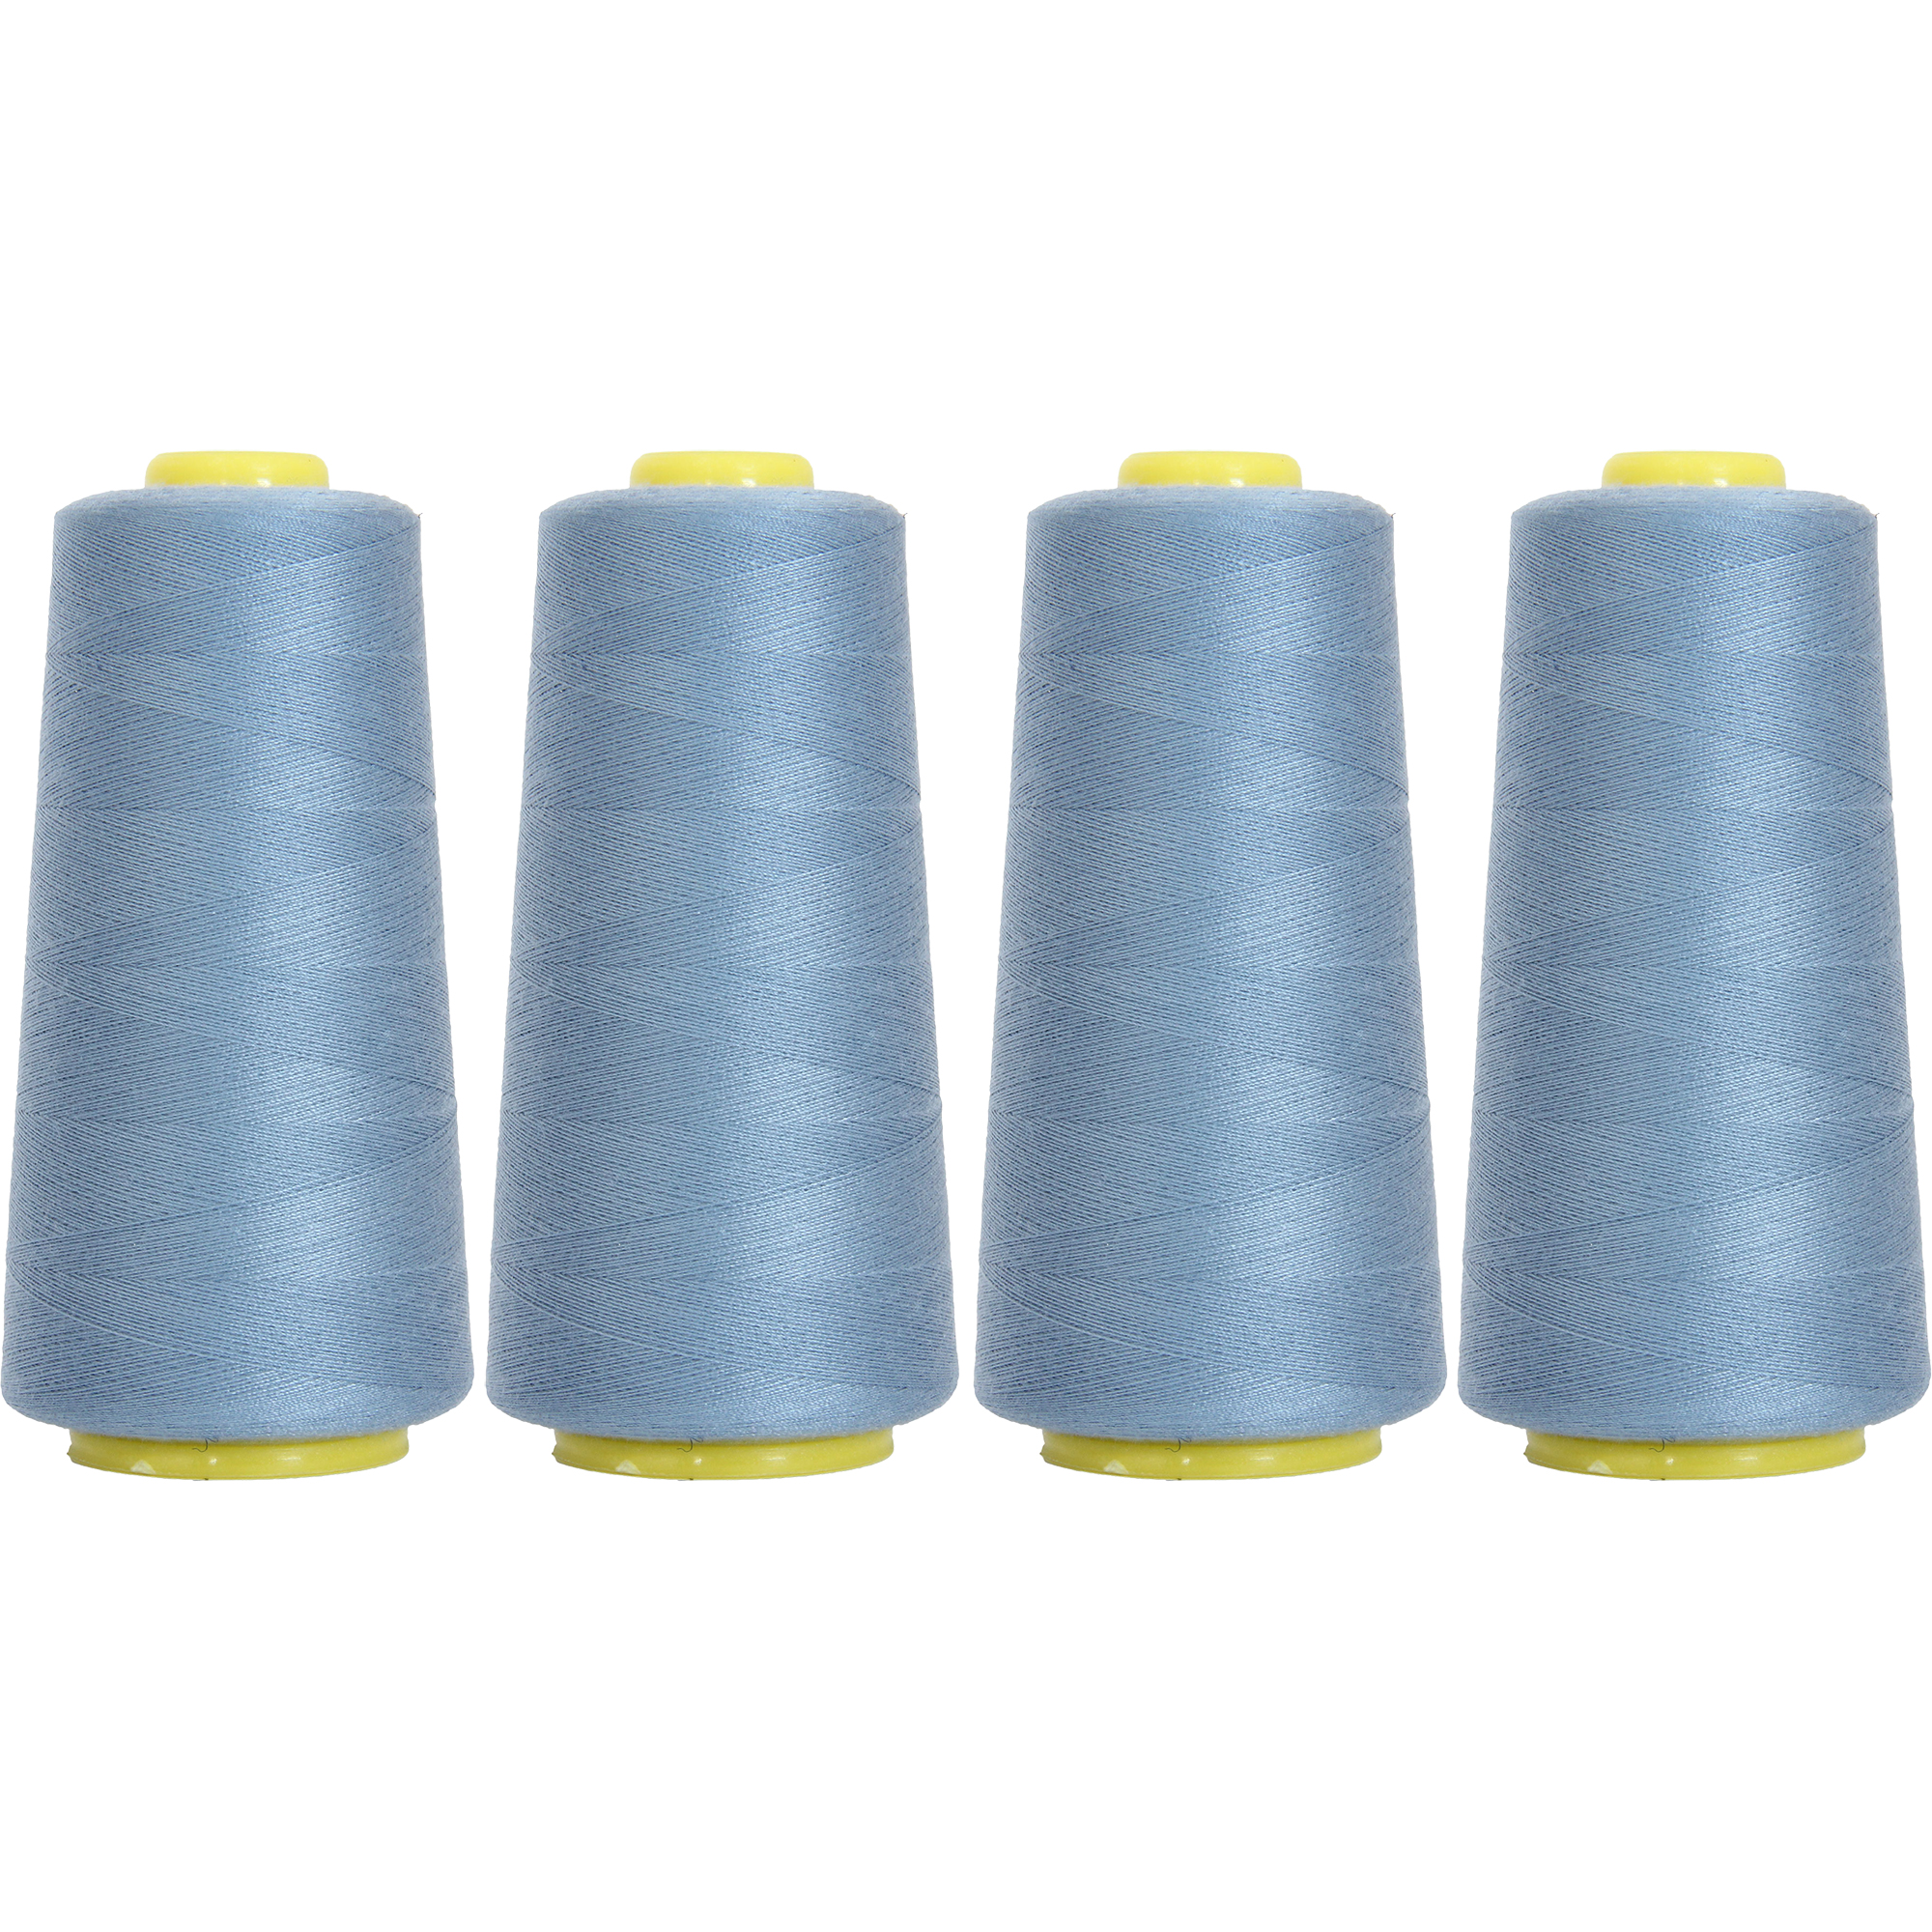 Threadart Polyester Serger Thread - 2750 yds 40/2 - Rose Jubilee - 56 Colors - 4 Cone Bundle Pack